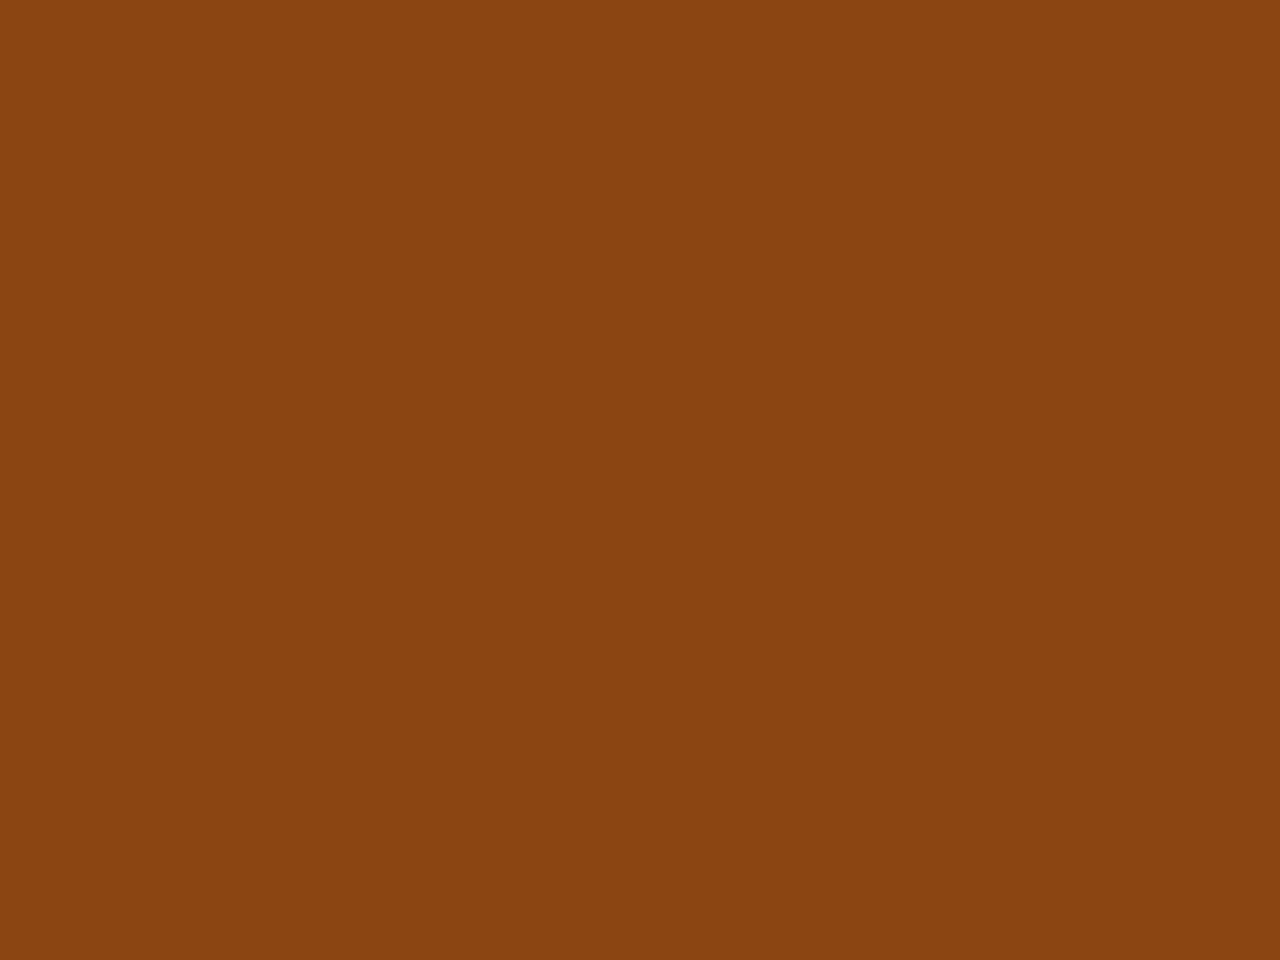 1280x960 Saddle Brown Solid Color Background